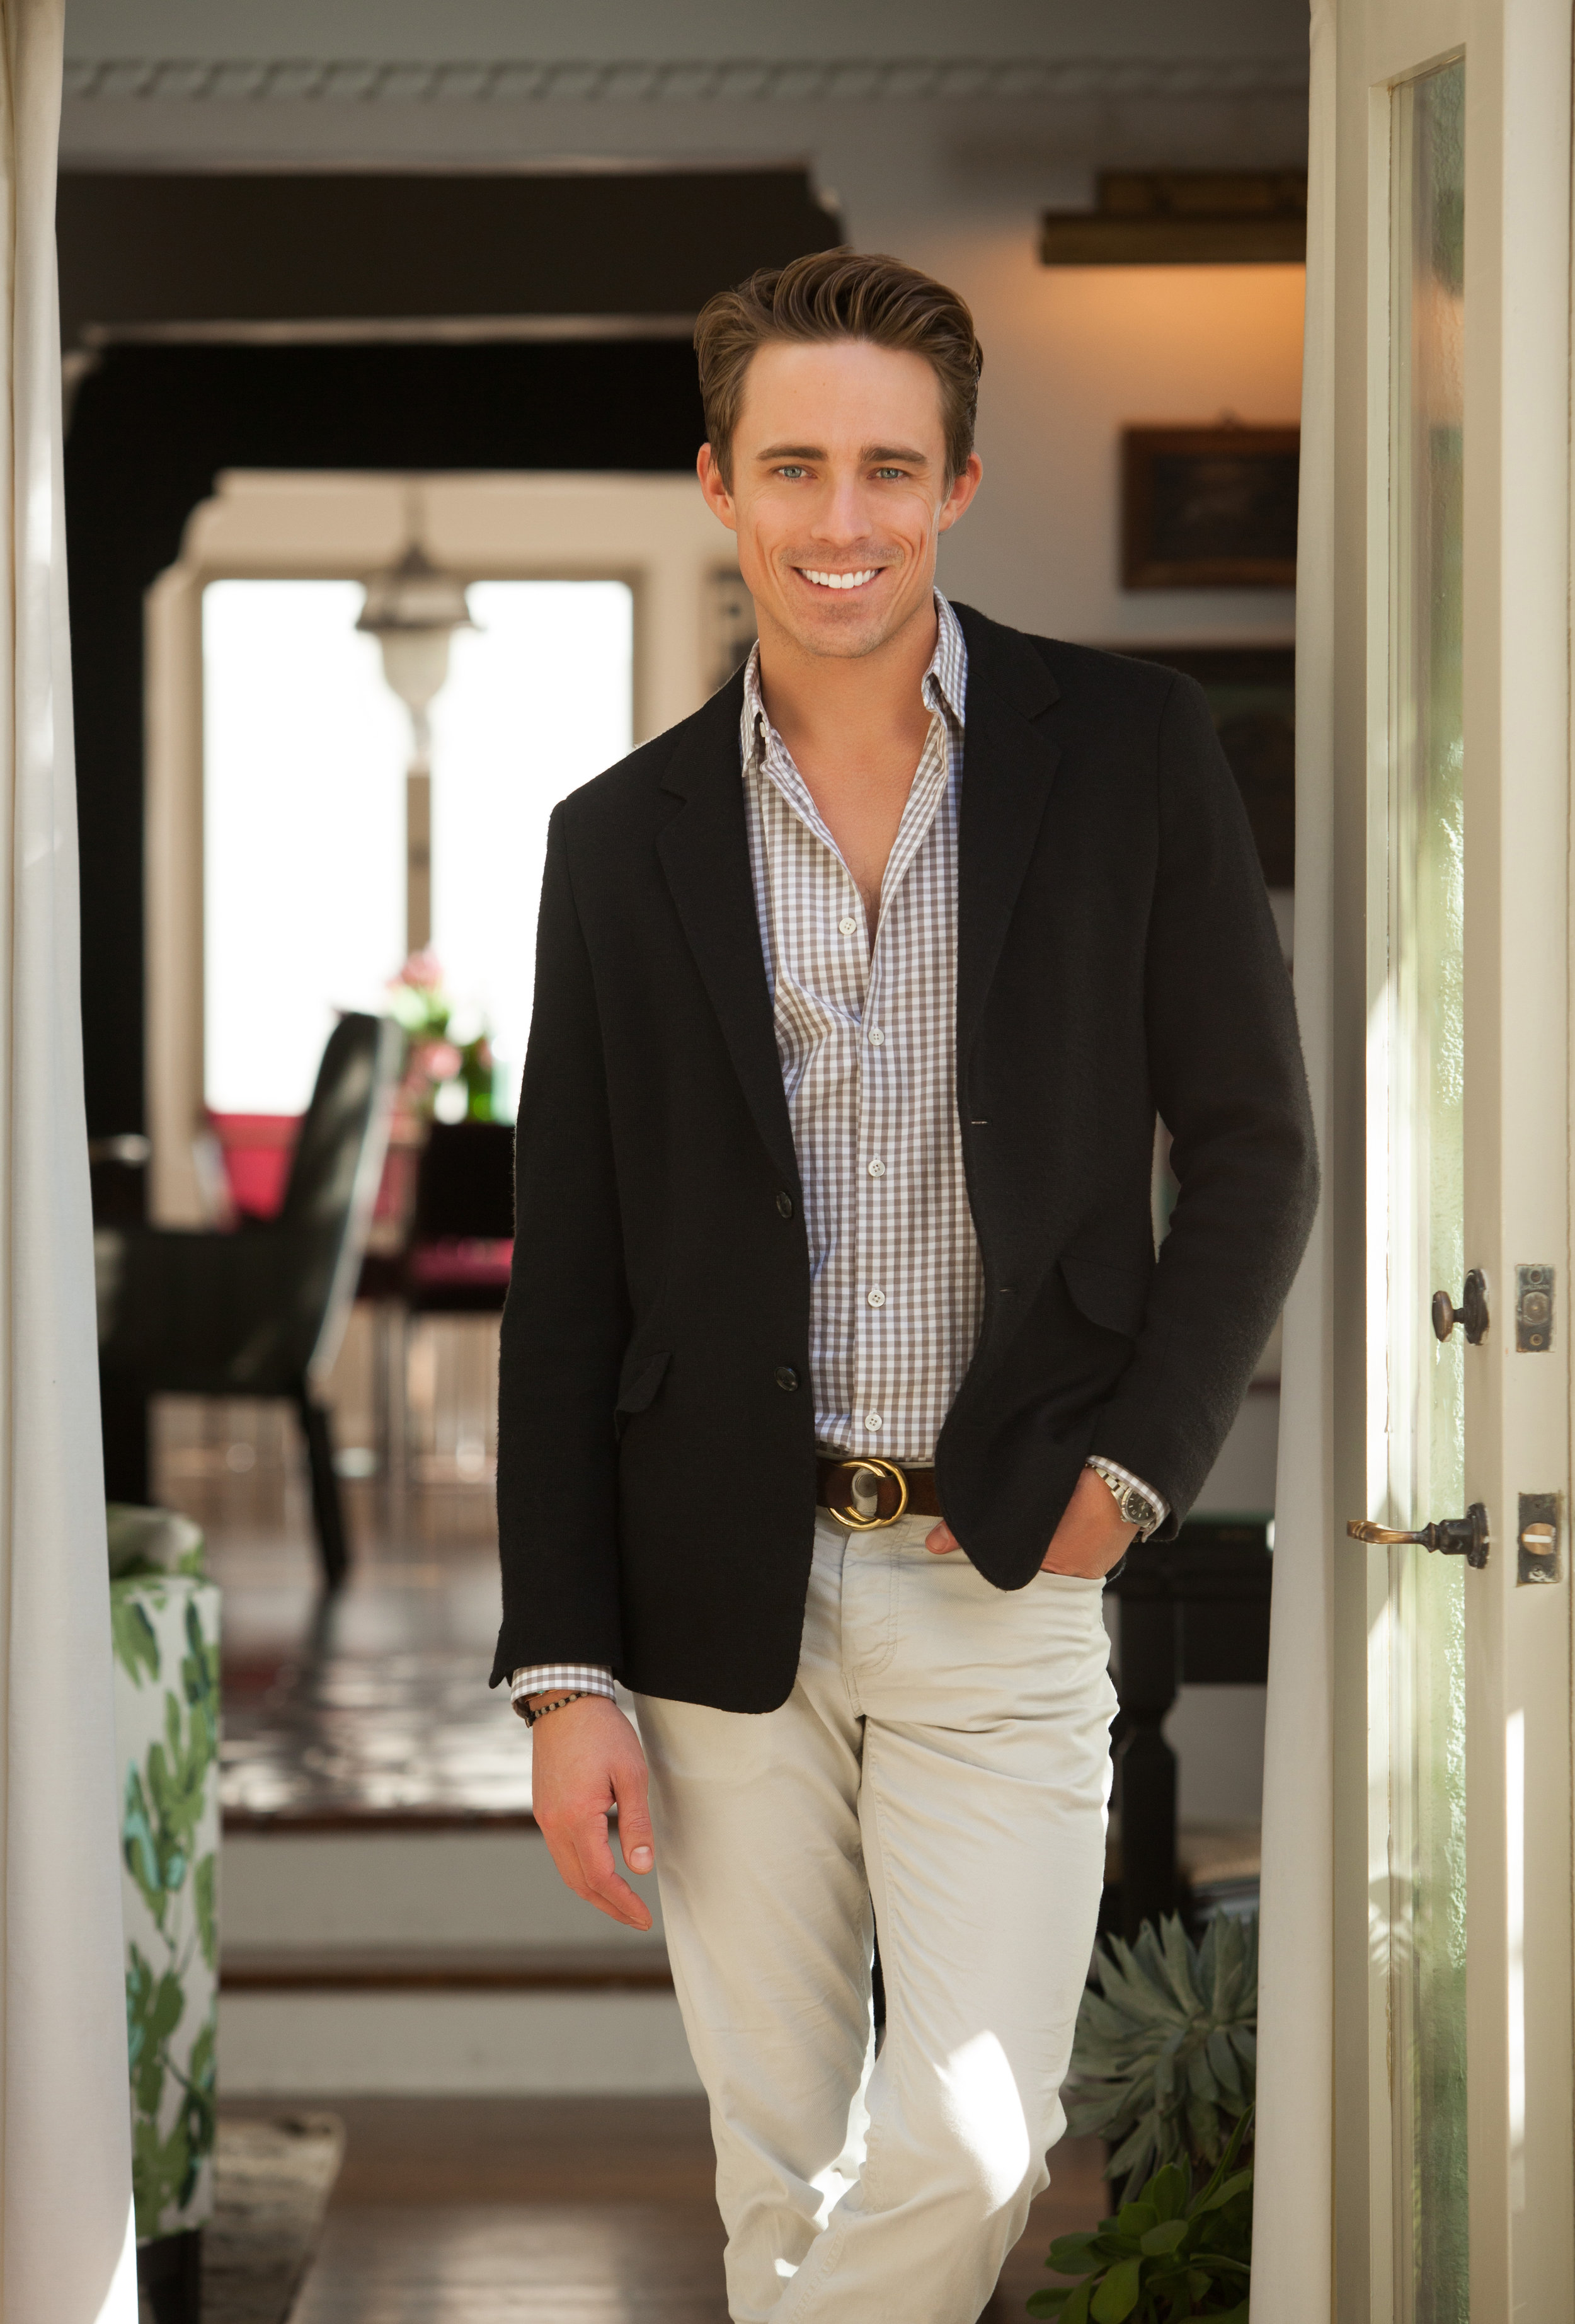 American Sophistication - Ryan White is the founder and president of Ryan White Designs, a highly sought after interior design firm that is paving the way for today's understated, clean, rich, comfortable and sophisticated interiors.Having spent seven years living in New York City and working in the fashion industry, Ryan relocated to Los Angeles on a quest to find new goals and aspirations. Within months of making this transition, White found his passion for design. Since founding RWD in 2012 Ryan has been featured in House Beautiful, Traditional Home, Hollywood Reporter, Departures, Luxe Magazine, Lonny Magazine, Saatchi Online, One Kings Lane, Domaine Home, Angeleno Interiors, I Heart Design and NBC Open House.